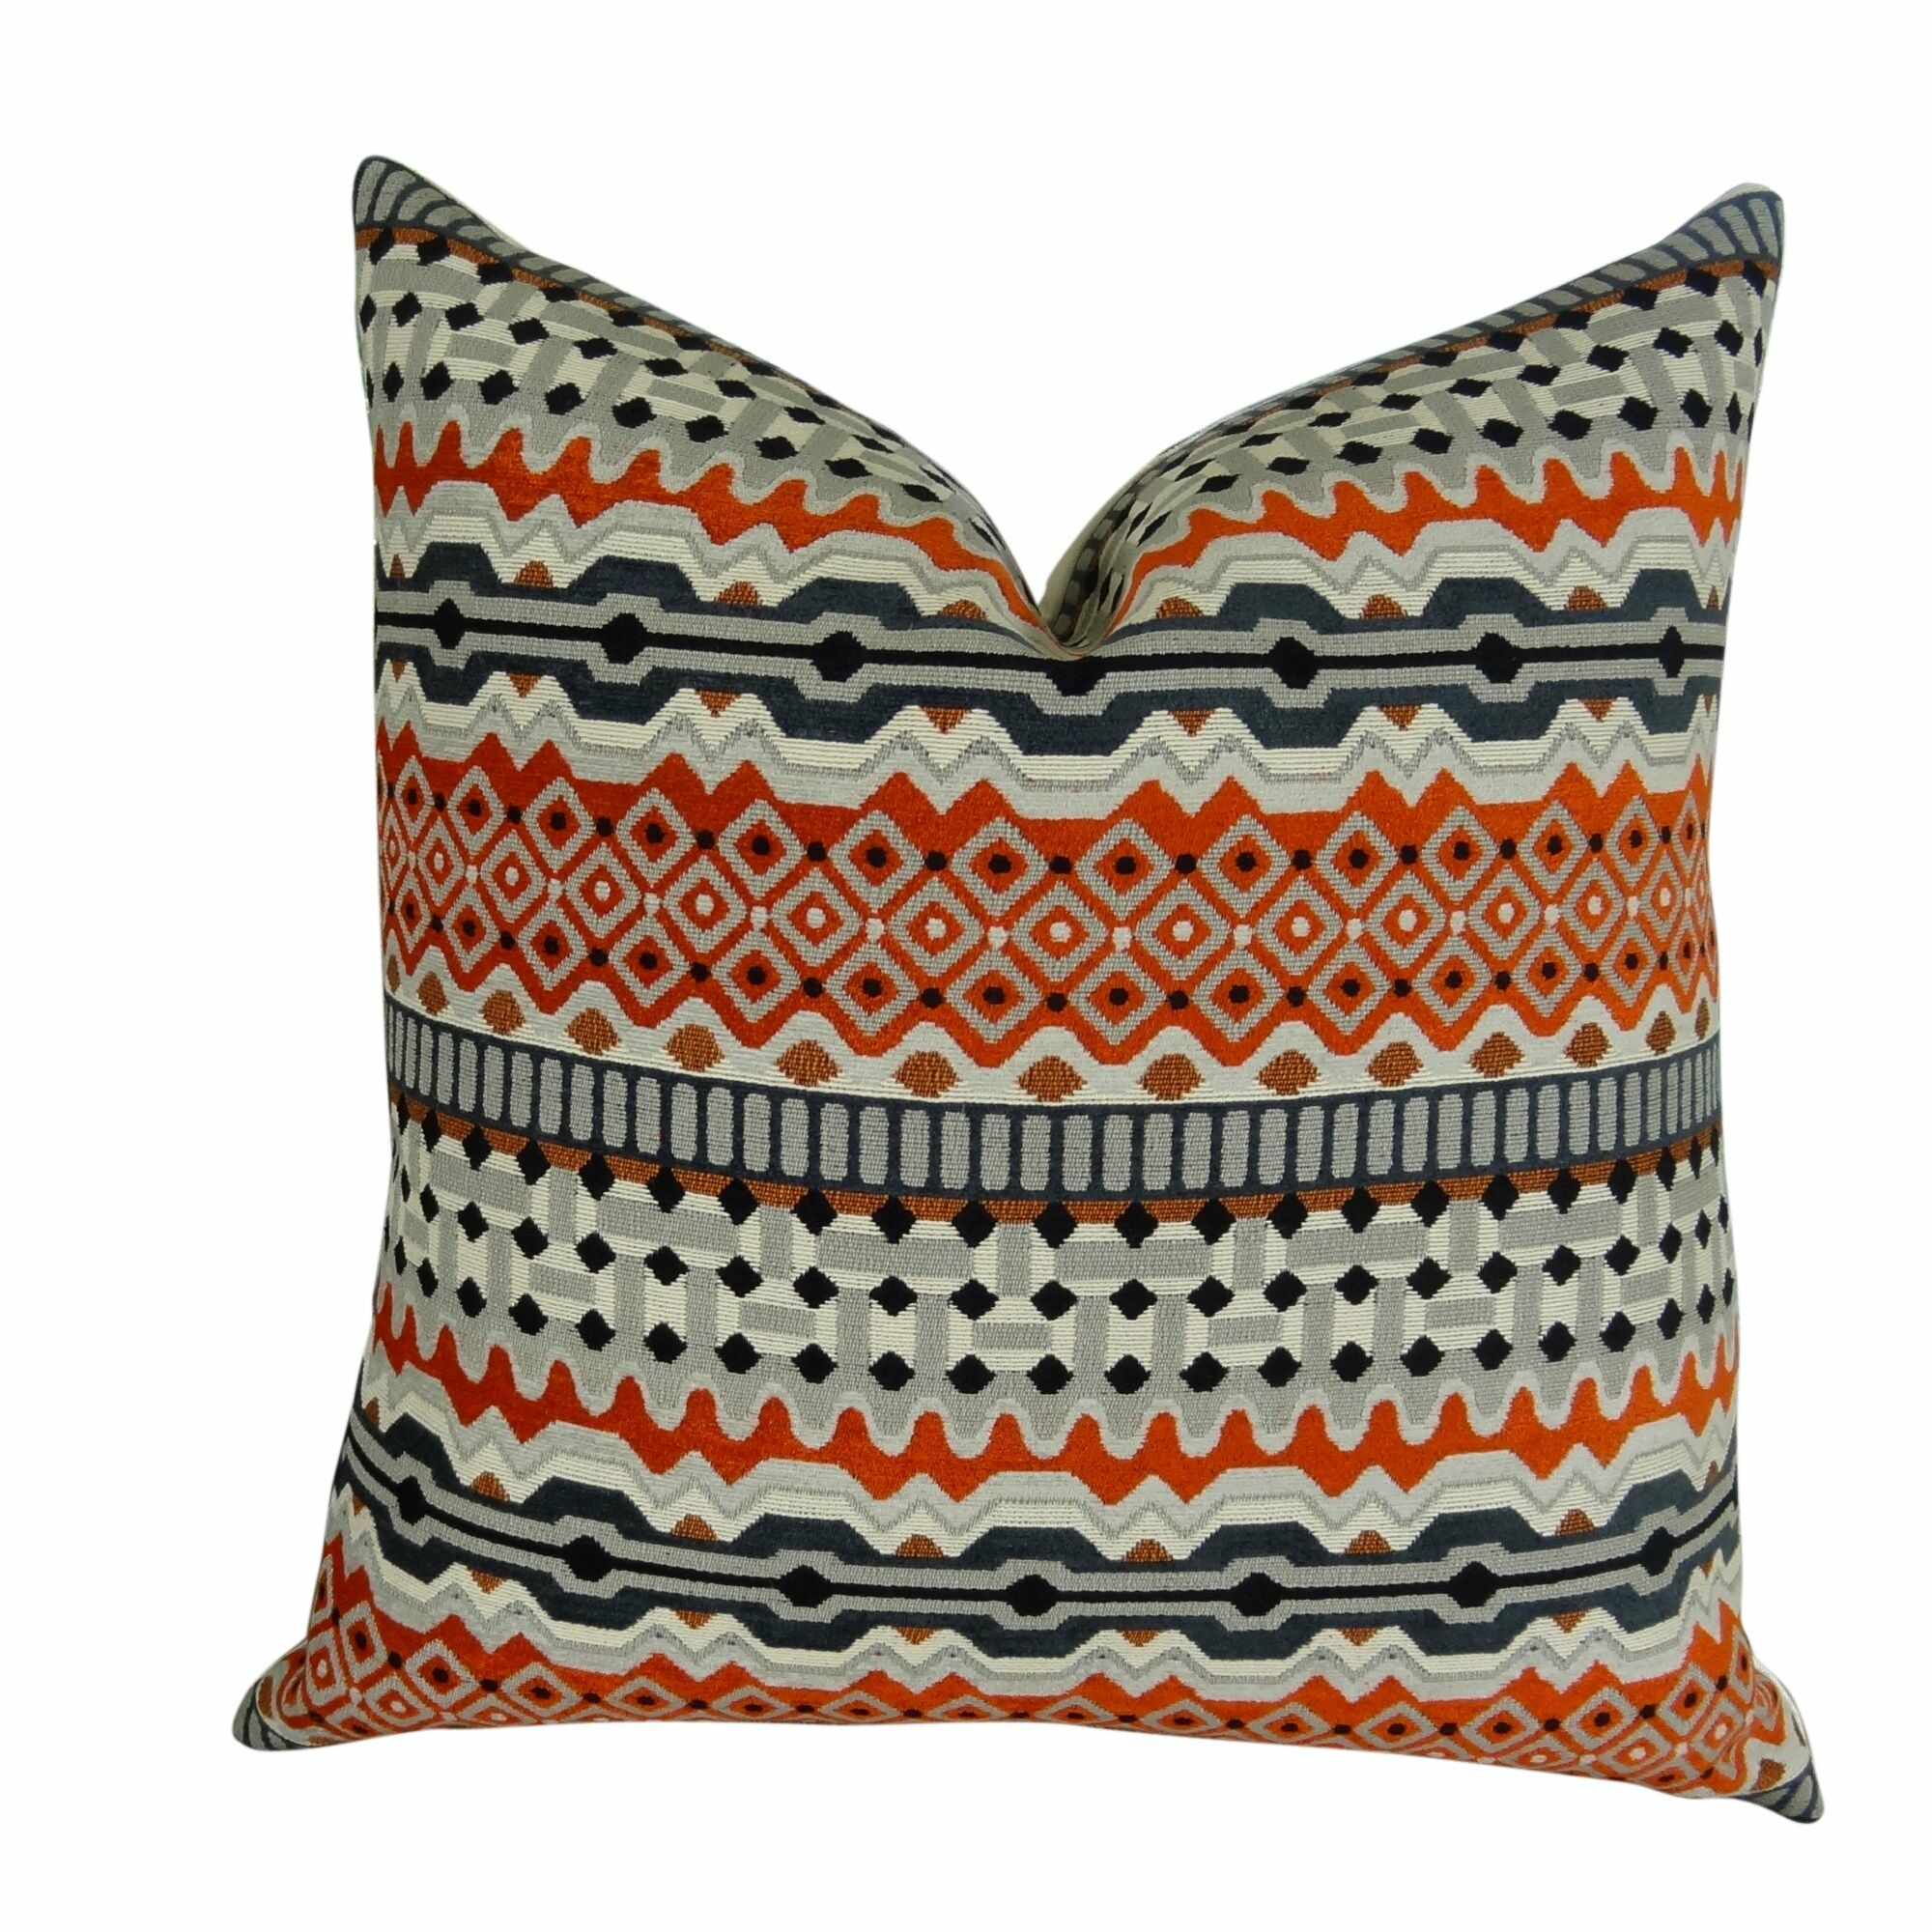 Pinero Luxury Pillow Fill Material: Cover Only - No Insert, Size: 20